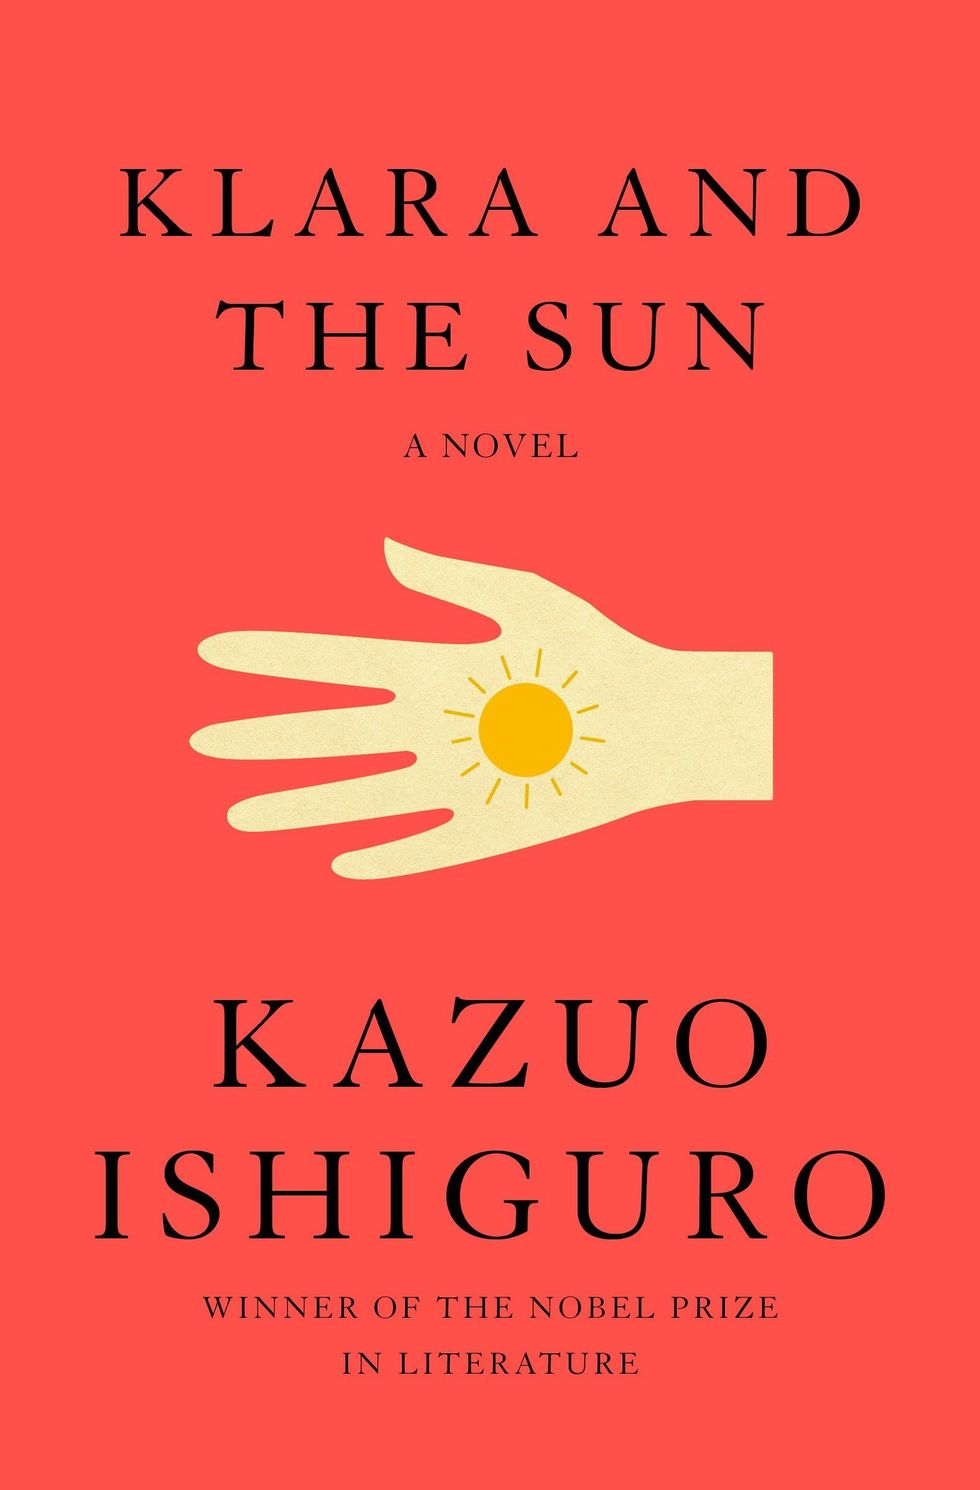 Kazuo Ishiguro talks about his first novel in 6 years, one of the most anticipated books of the season